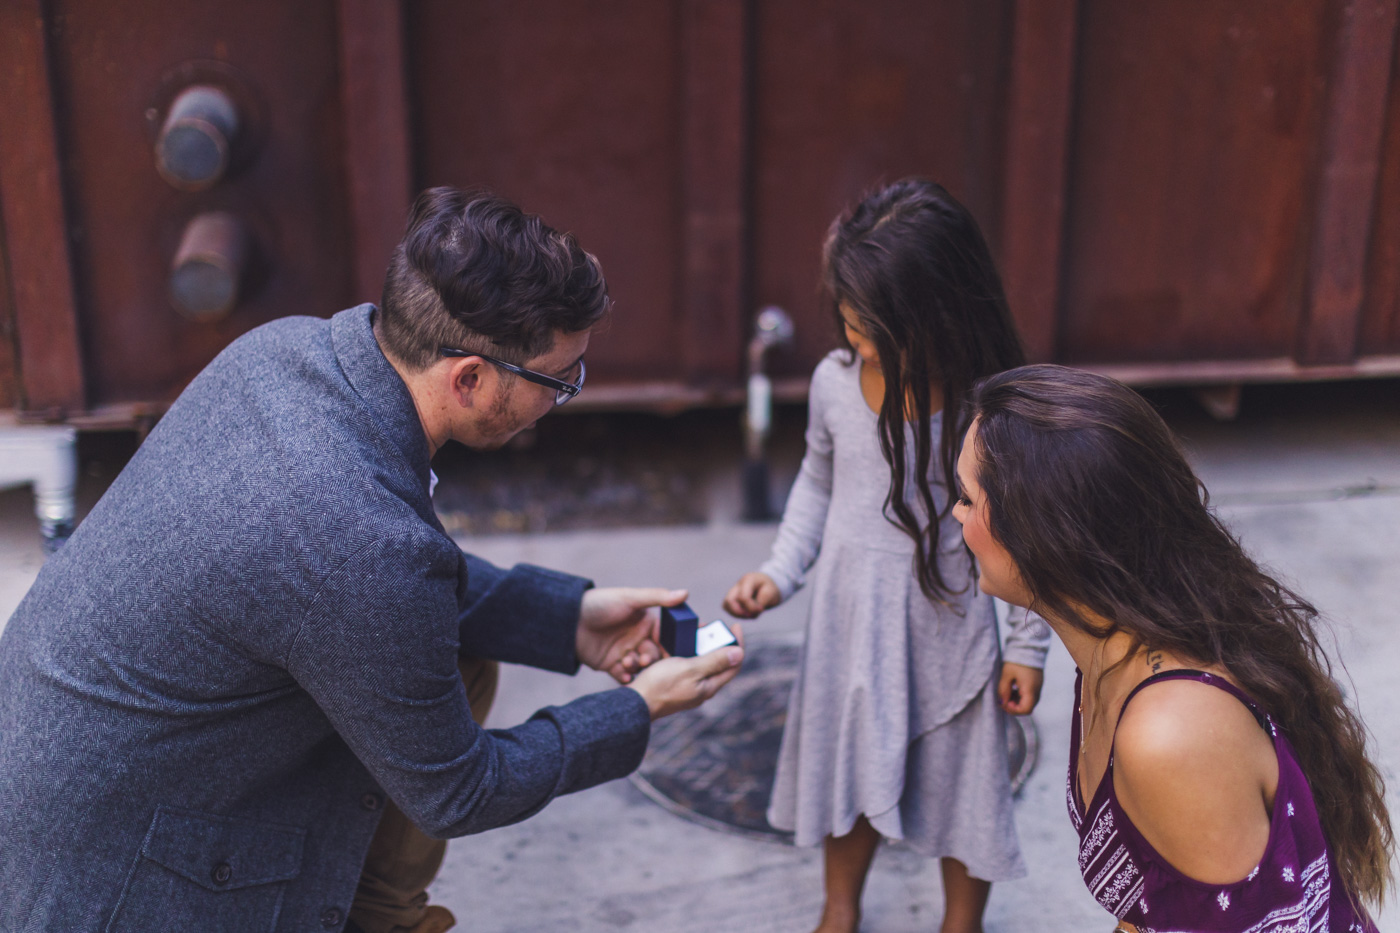 daughter-included-in-marriage-proposal